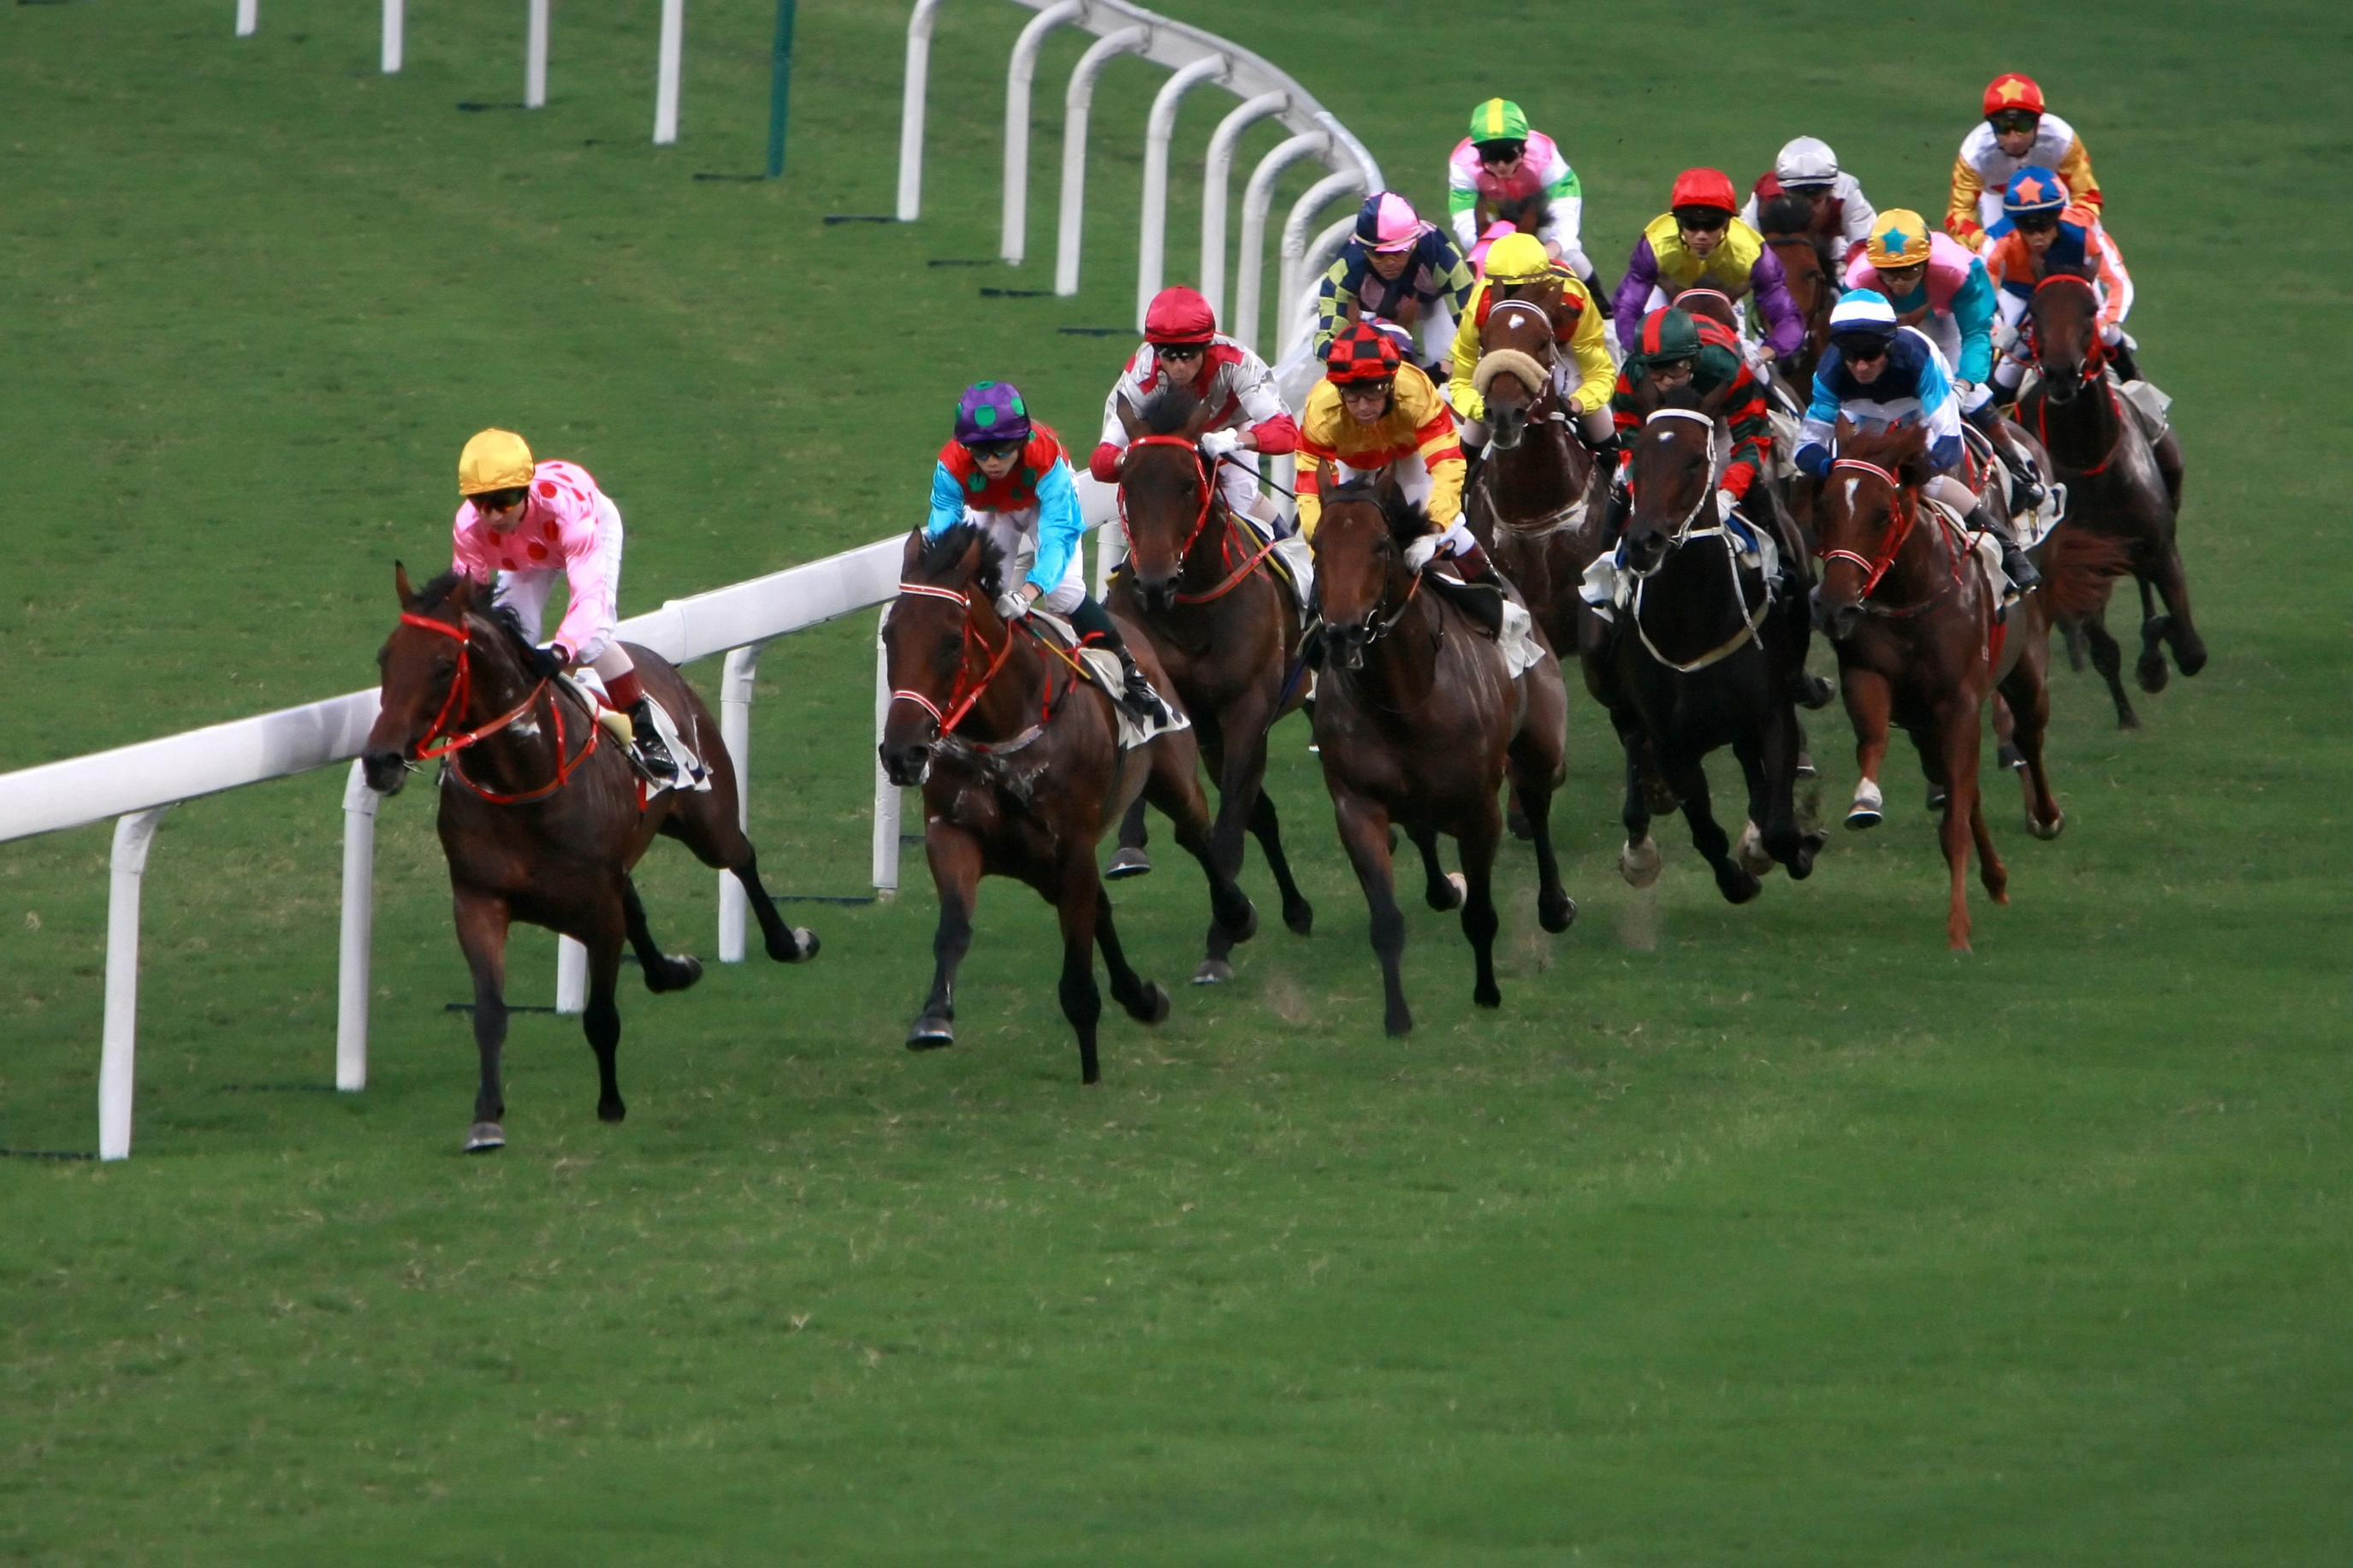 Bookmaker Promo Bans - Not The End Of The Road